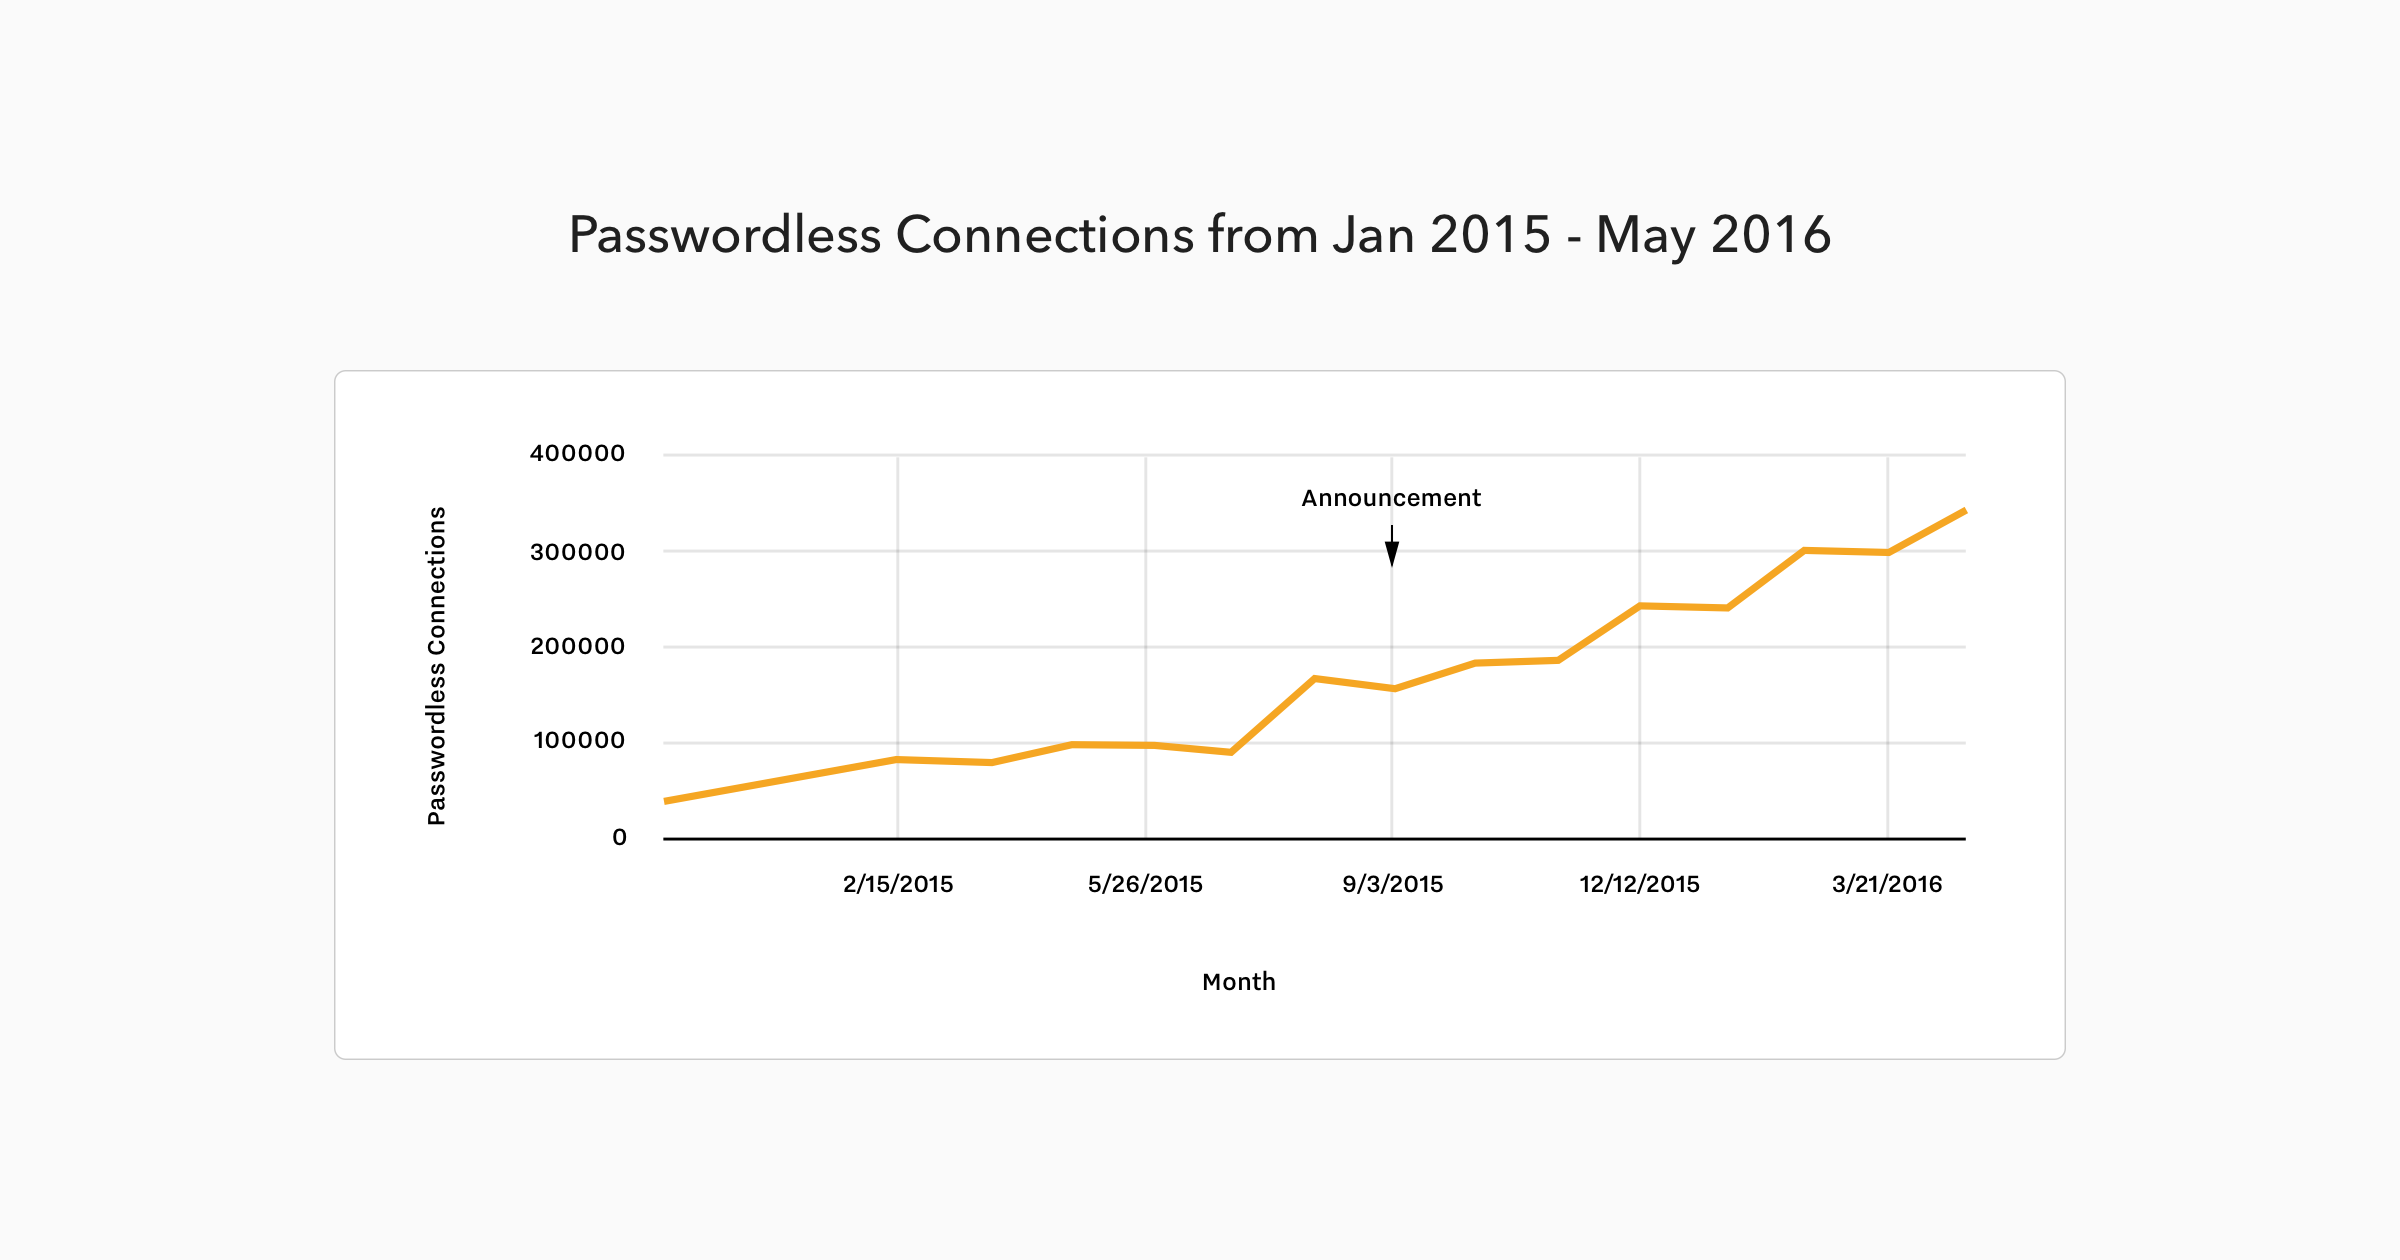 Passwordless Connections from Jan 2015 to May 2016